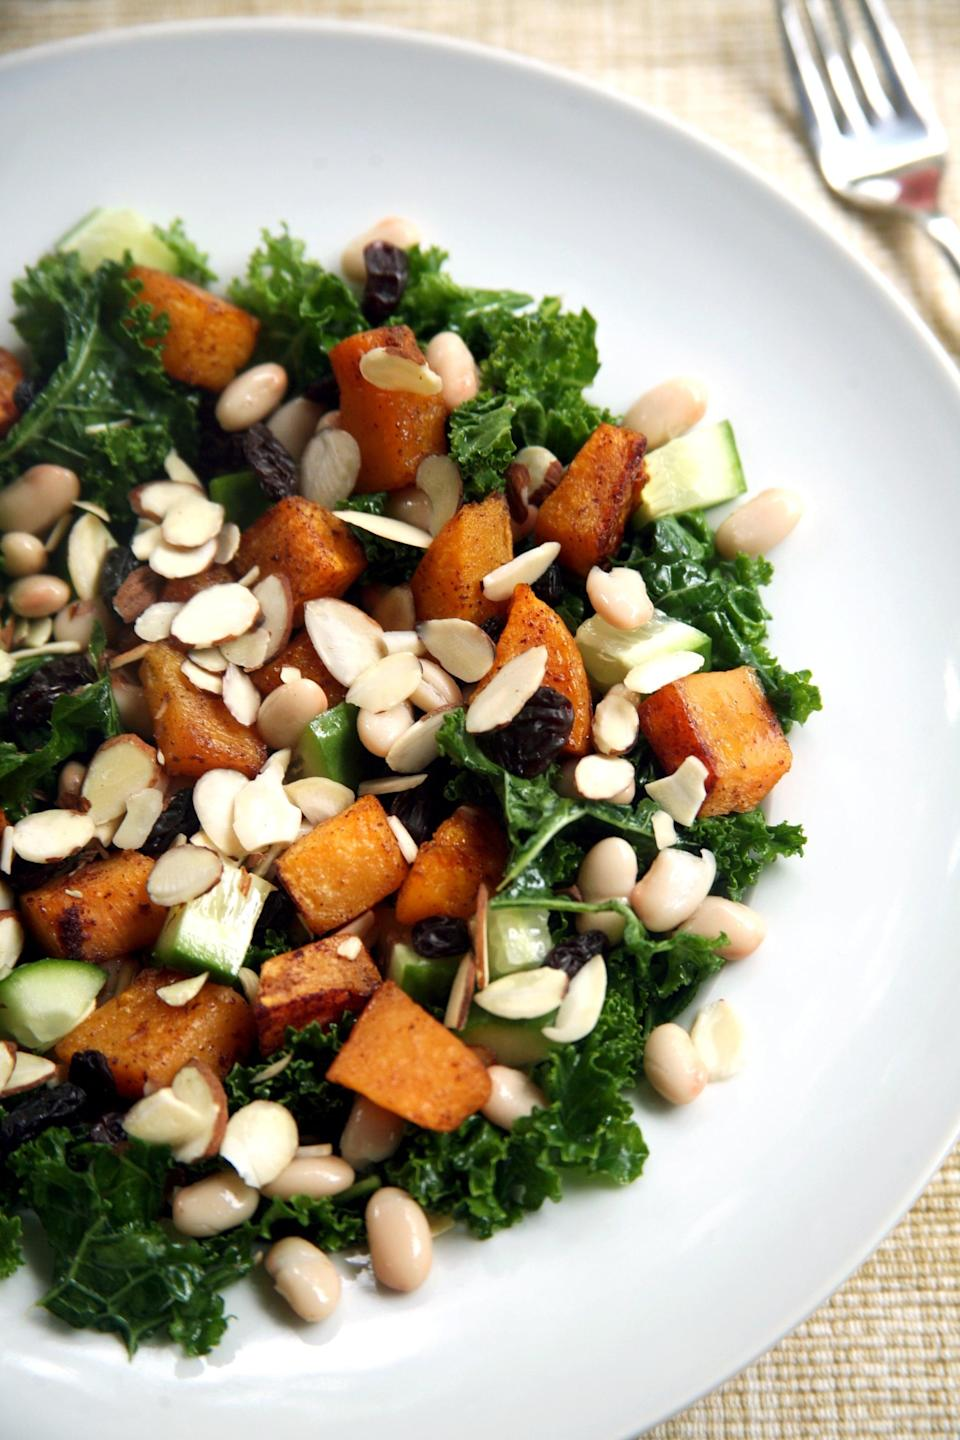 """<p>Massaged kale is topped with warm maple-cinnamon roasted butternut squash, white beans for protein, cucumbers and almonds for a satisfying crunch, and raisins for a little added sweetness. </p> <p><strong>Get the recipe:</strong> <a href=""""https://www.popsugar.com/fitness/Maple-Butternut-Squash-Kale-Salad-42552336"""" class=""""link rapid-noclick-resp"""" rel=""""nofollow noopener"""" target=""""_blank"""" data-ylk=""""slk:maple-roasted butternut squash, kale, and white bean salad"""">maple-roasted butternut squash, kale, and white bean salad</a></p>"""